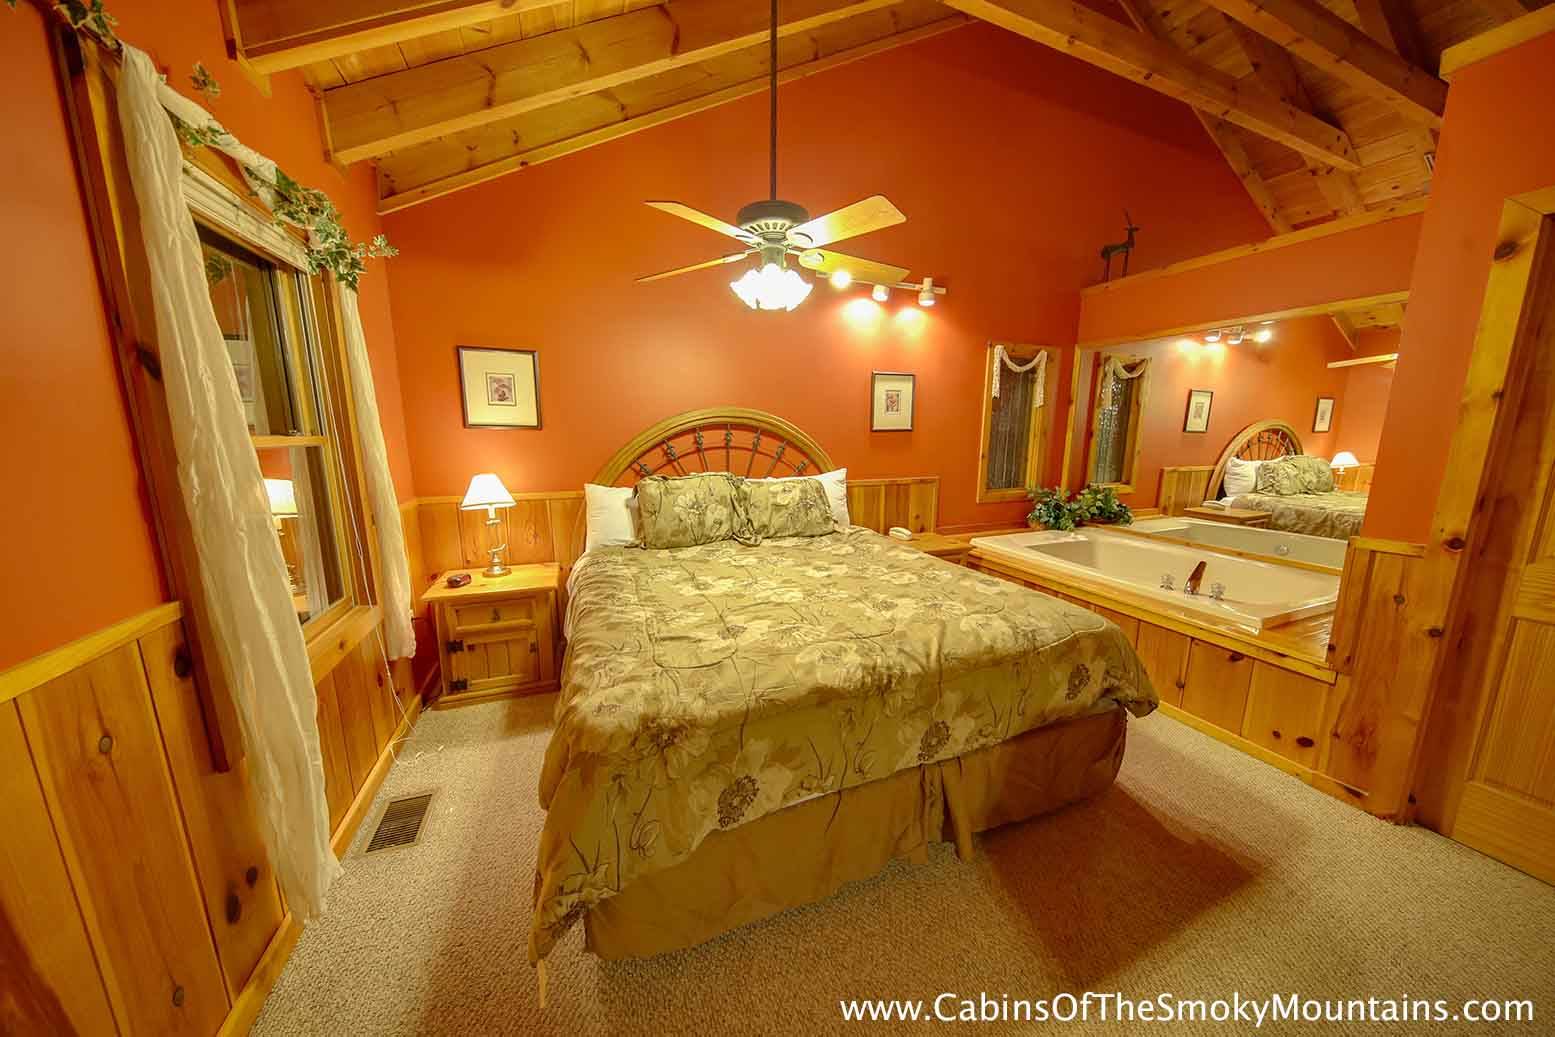 1 bedroom cabins in pigeon forge tn - 3 bedroom cabins in gatlinburg tn cheap ...